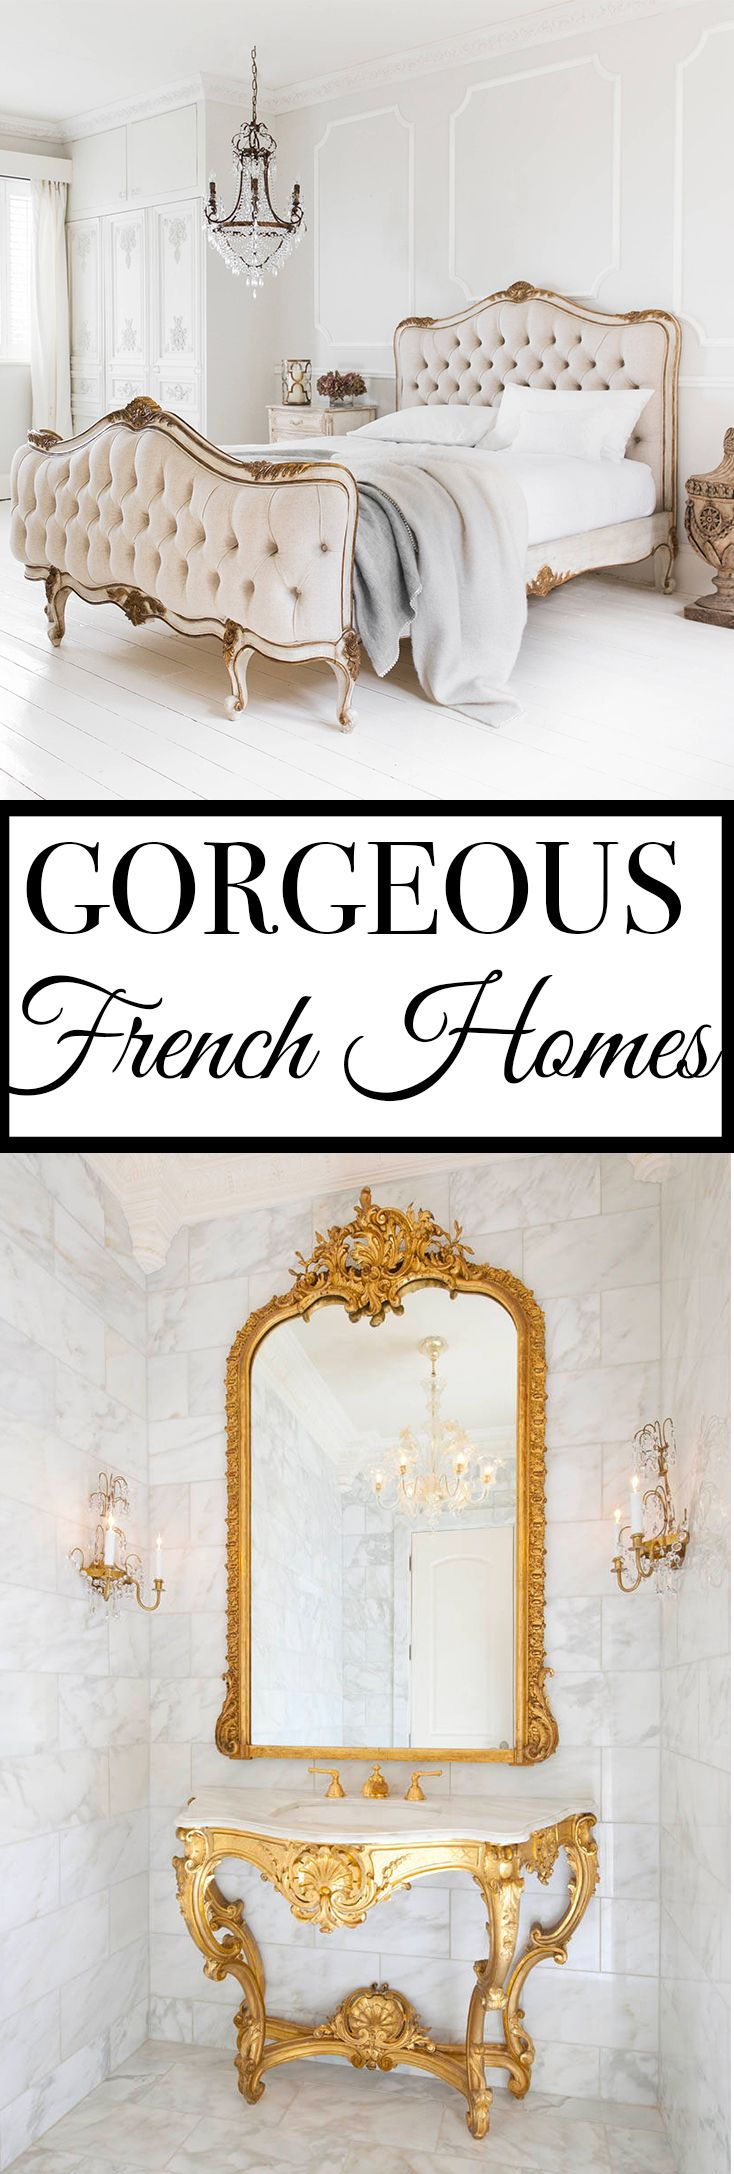 French Decorating Ideas best 25+ french bathroom decor ideas only on pinterest | french